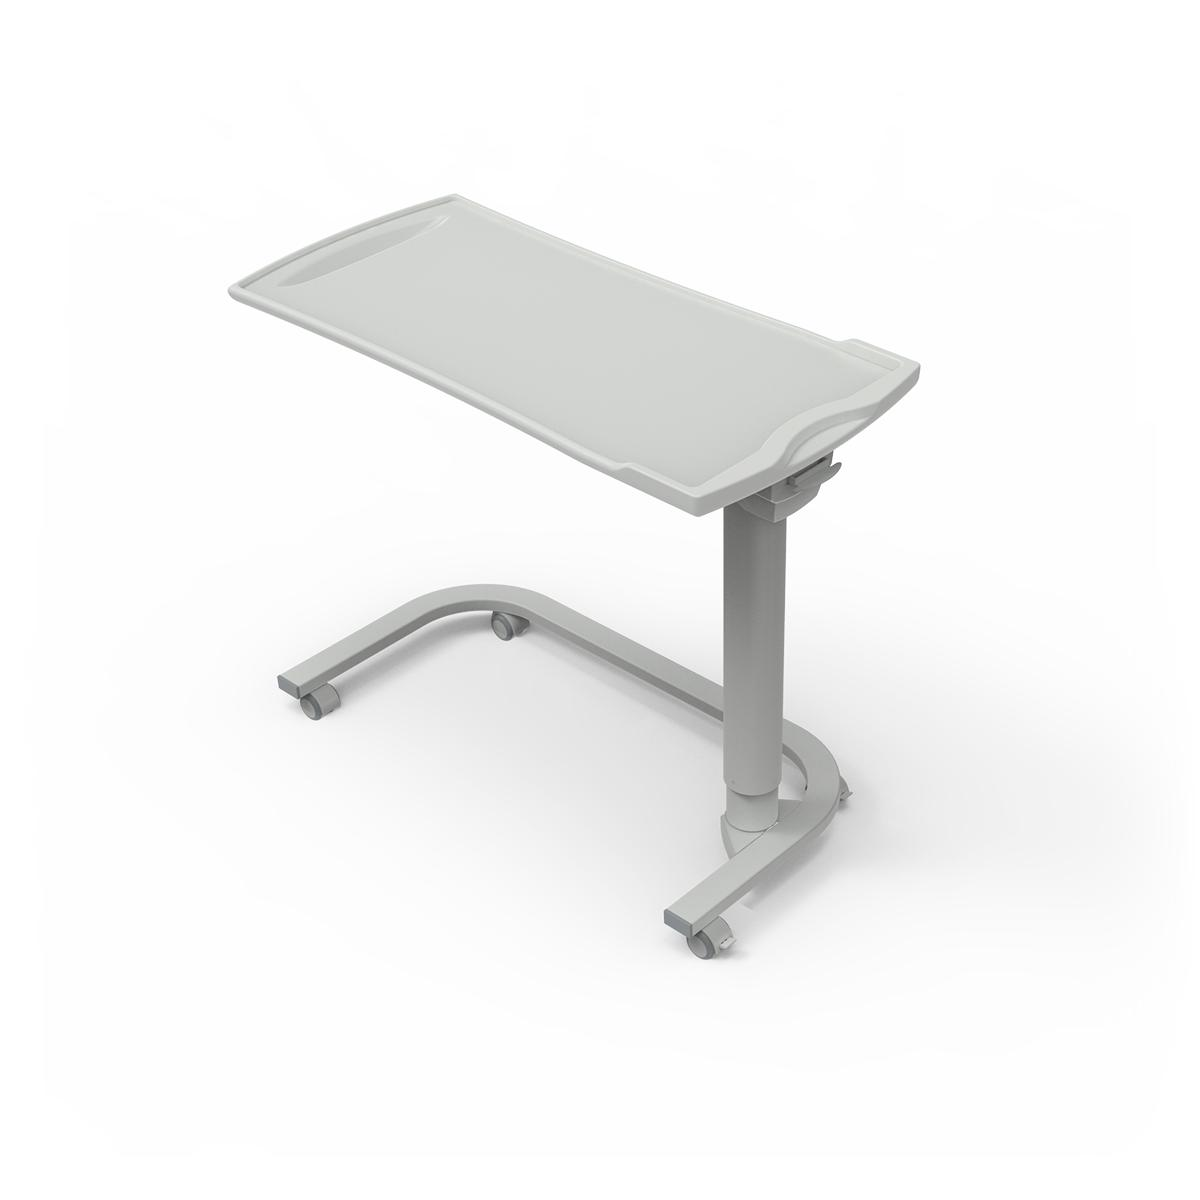 Overbed Table TA270 with u-shaped base and plastic top